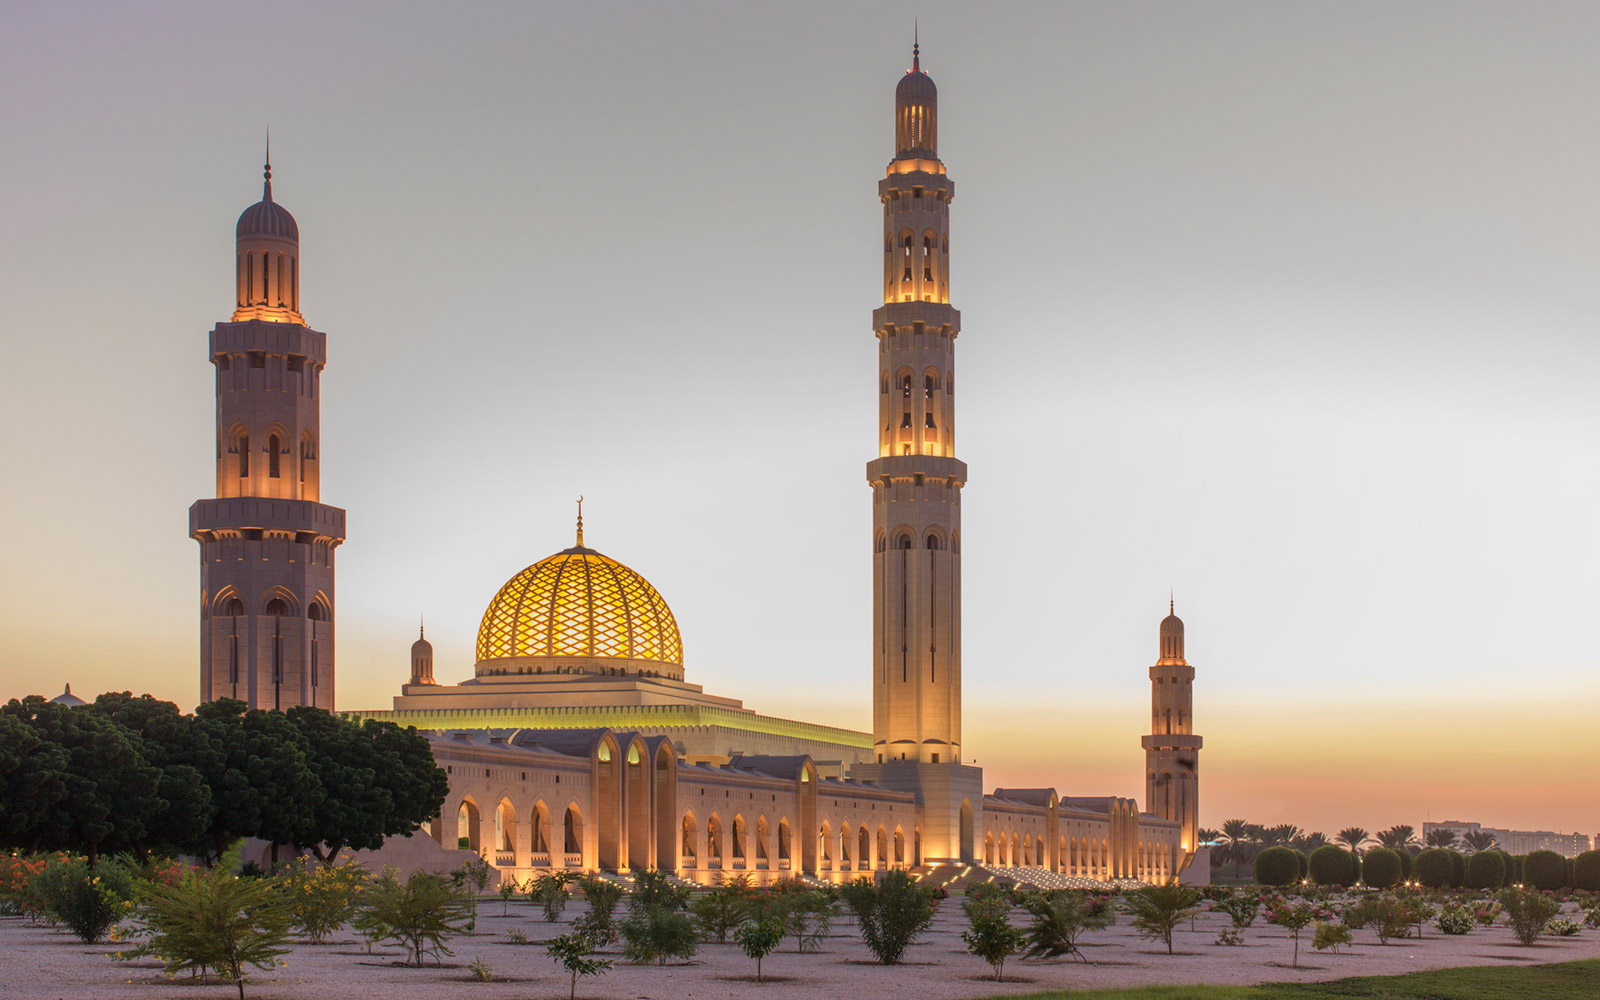 The Sultan Qaboos Grand Mosque, Oman